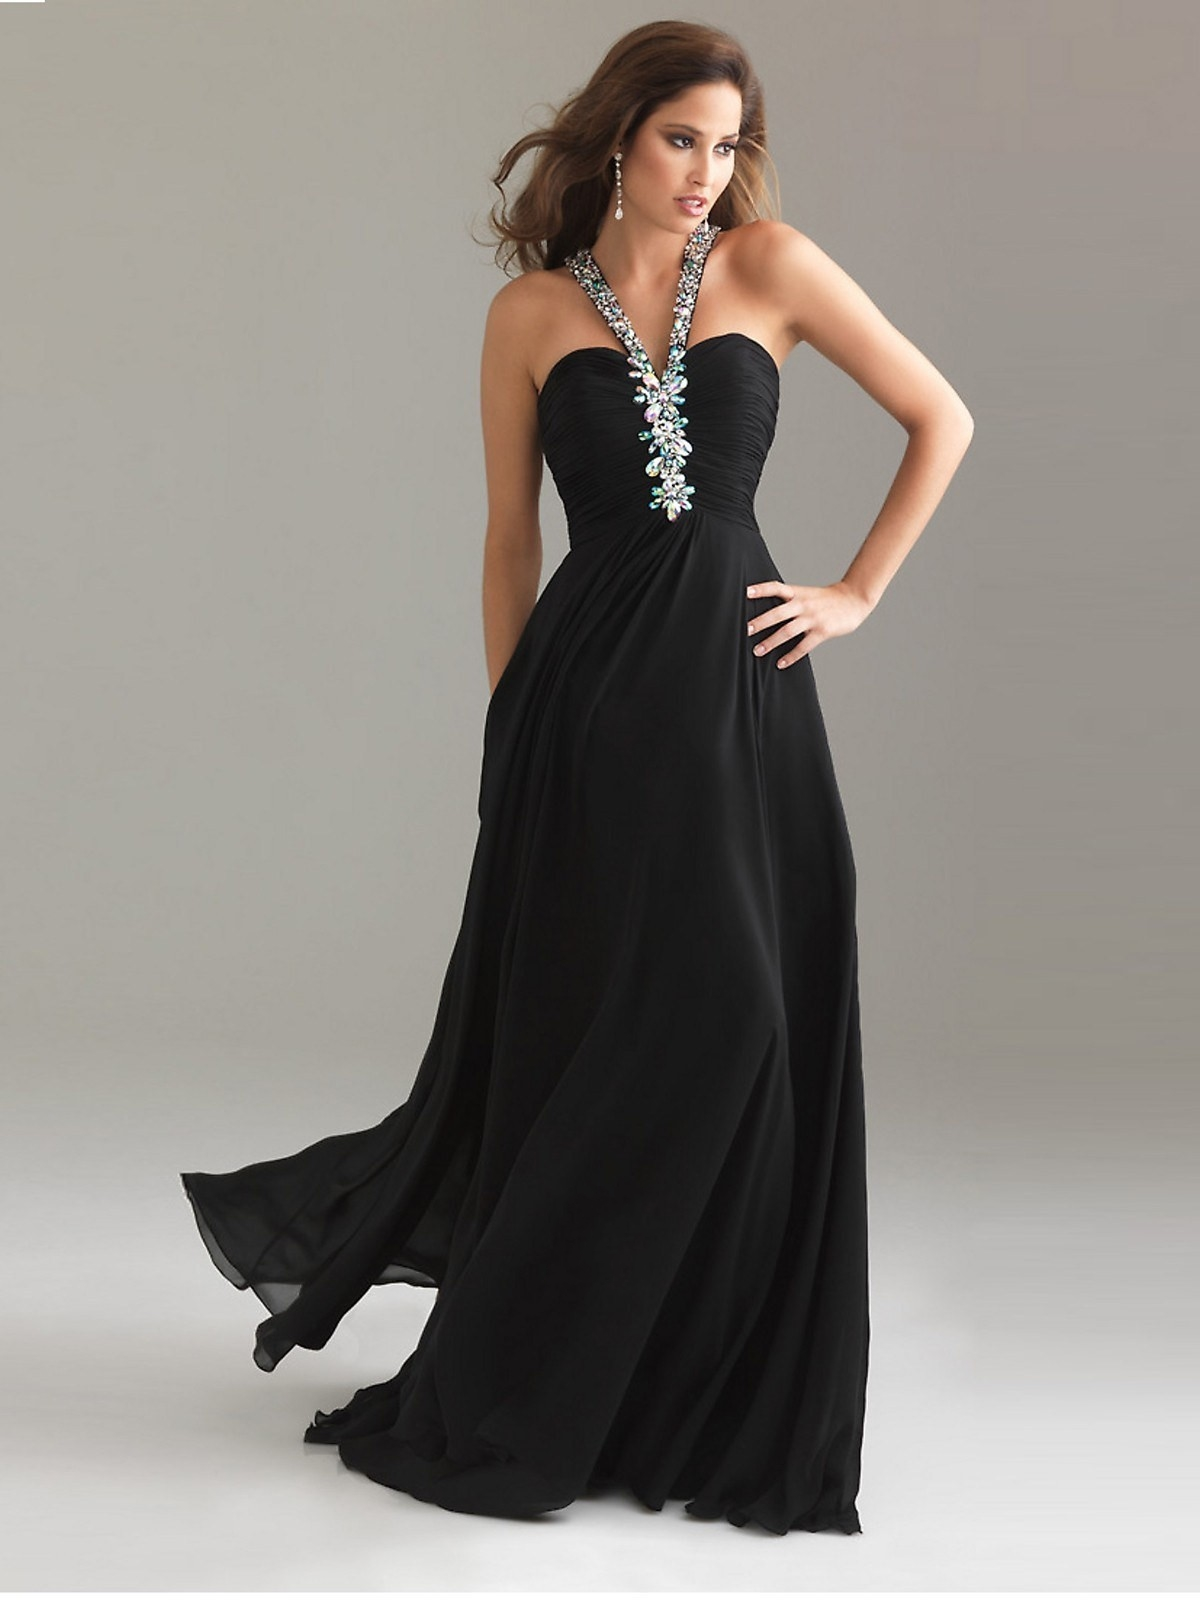 Black and silver dresses for women